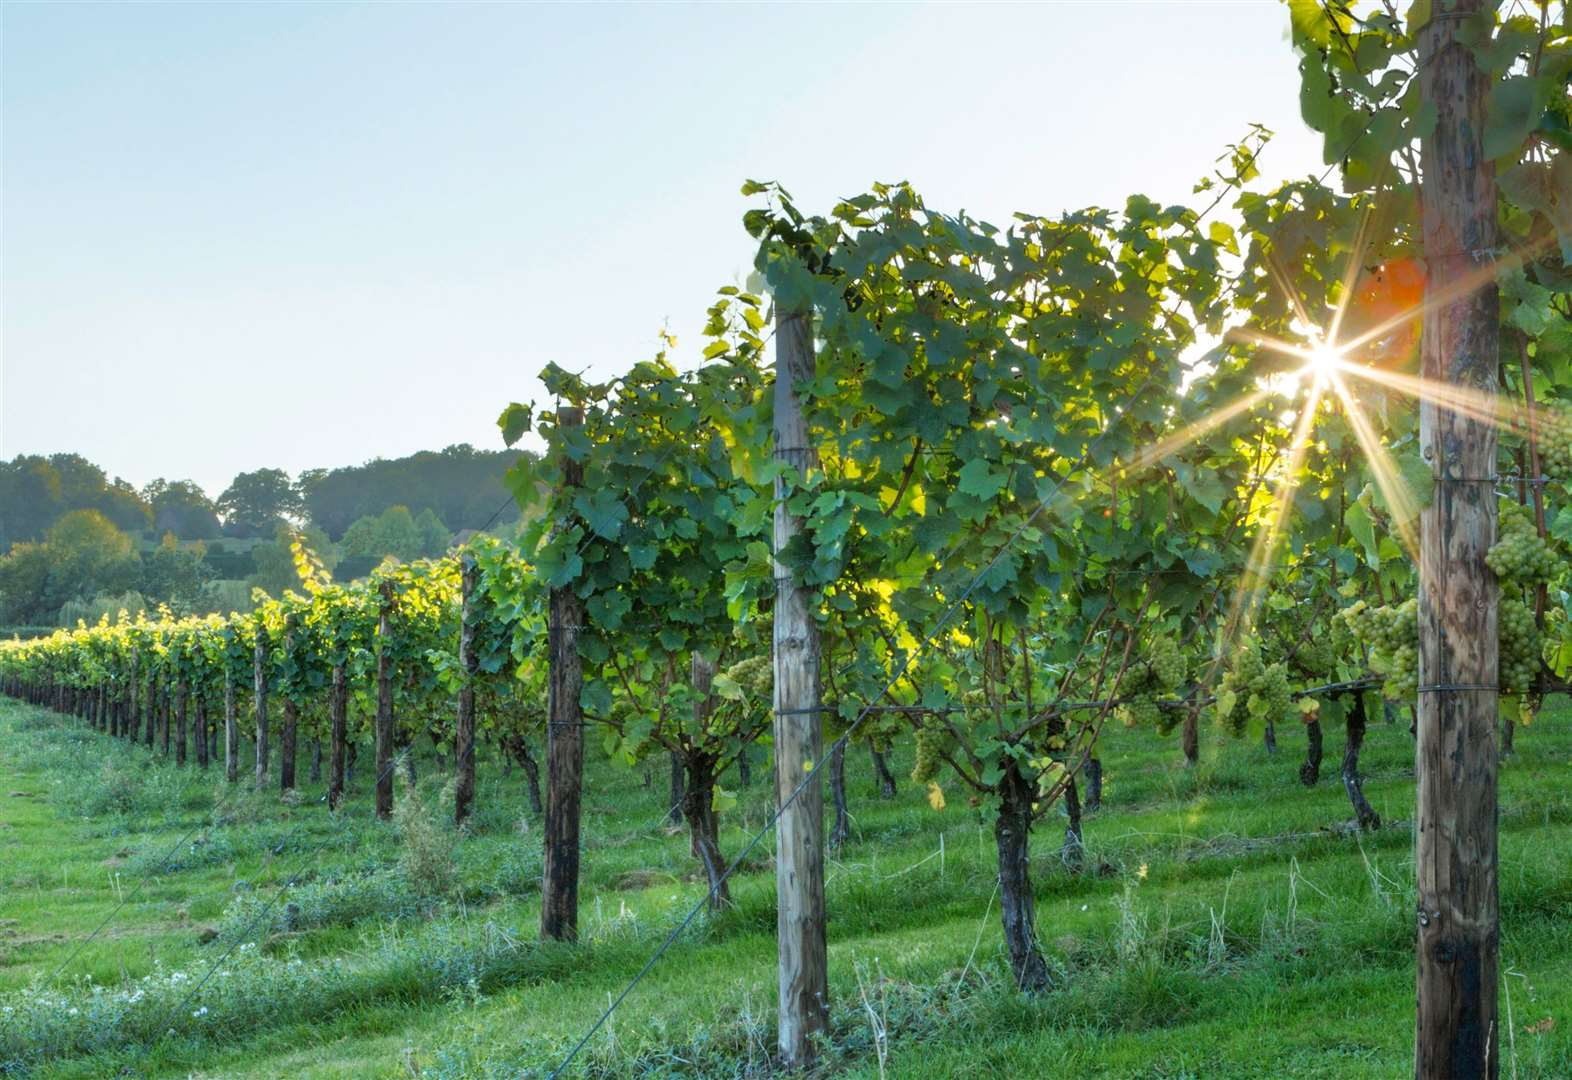 Cycle tours for Kent wine lovers